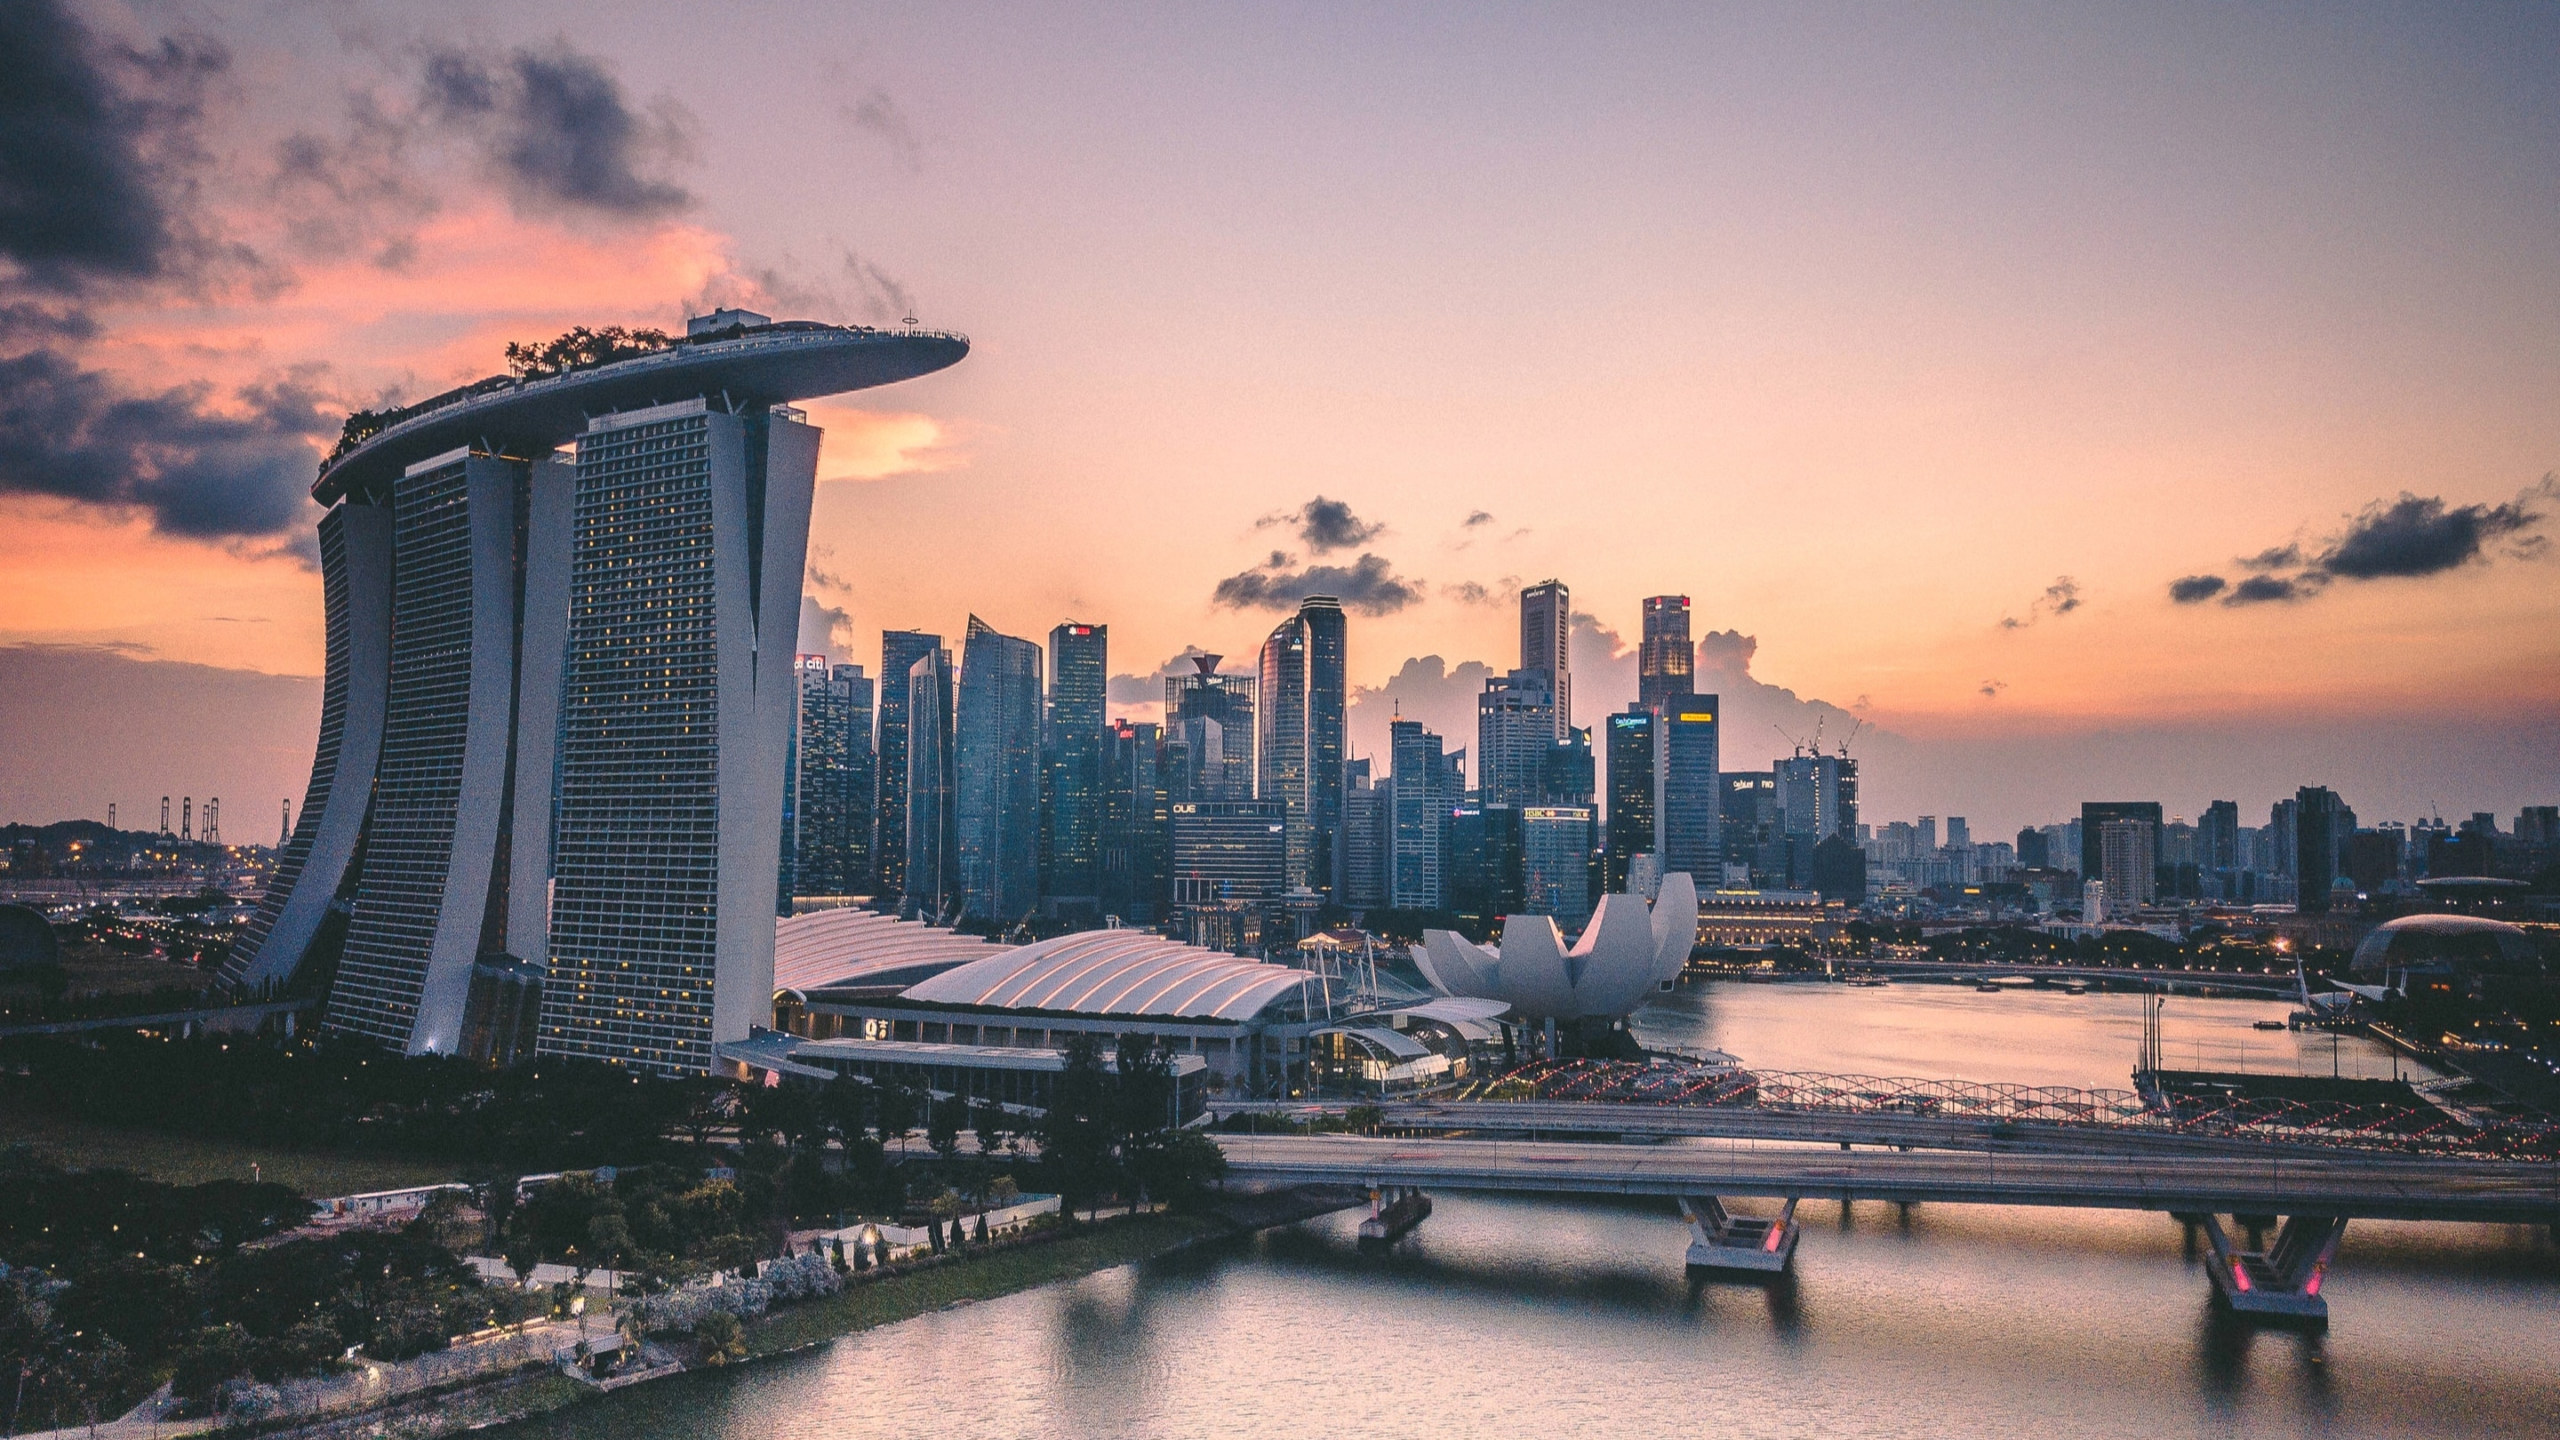 singapore-aspect-ratio-2560-1440